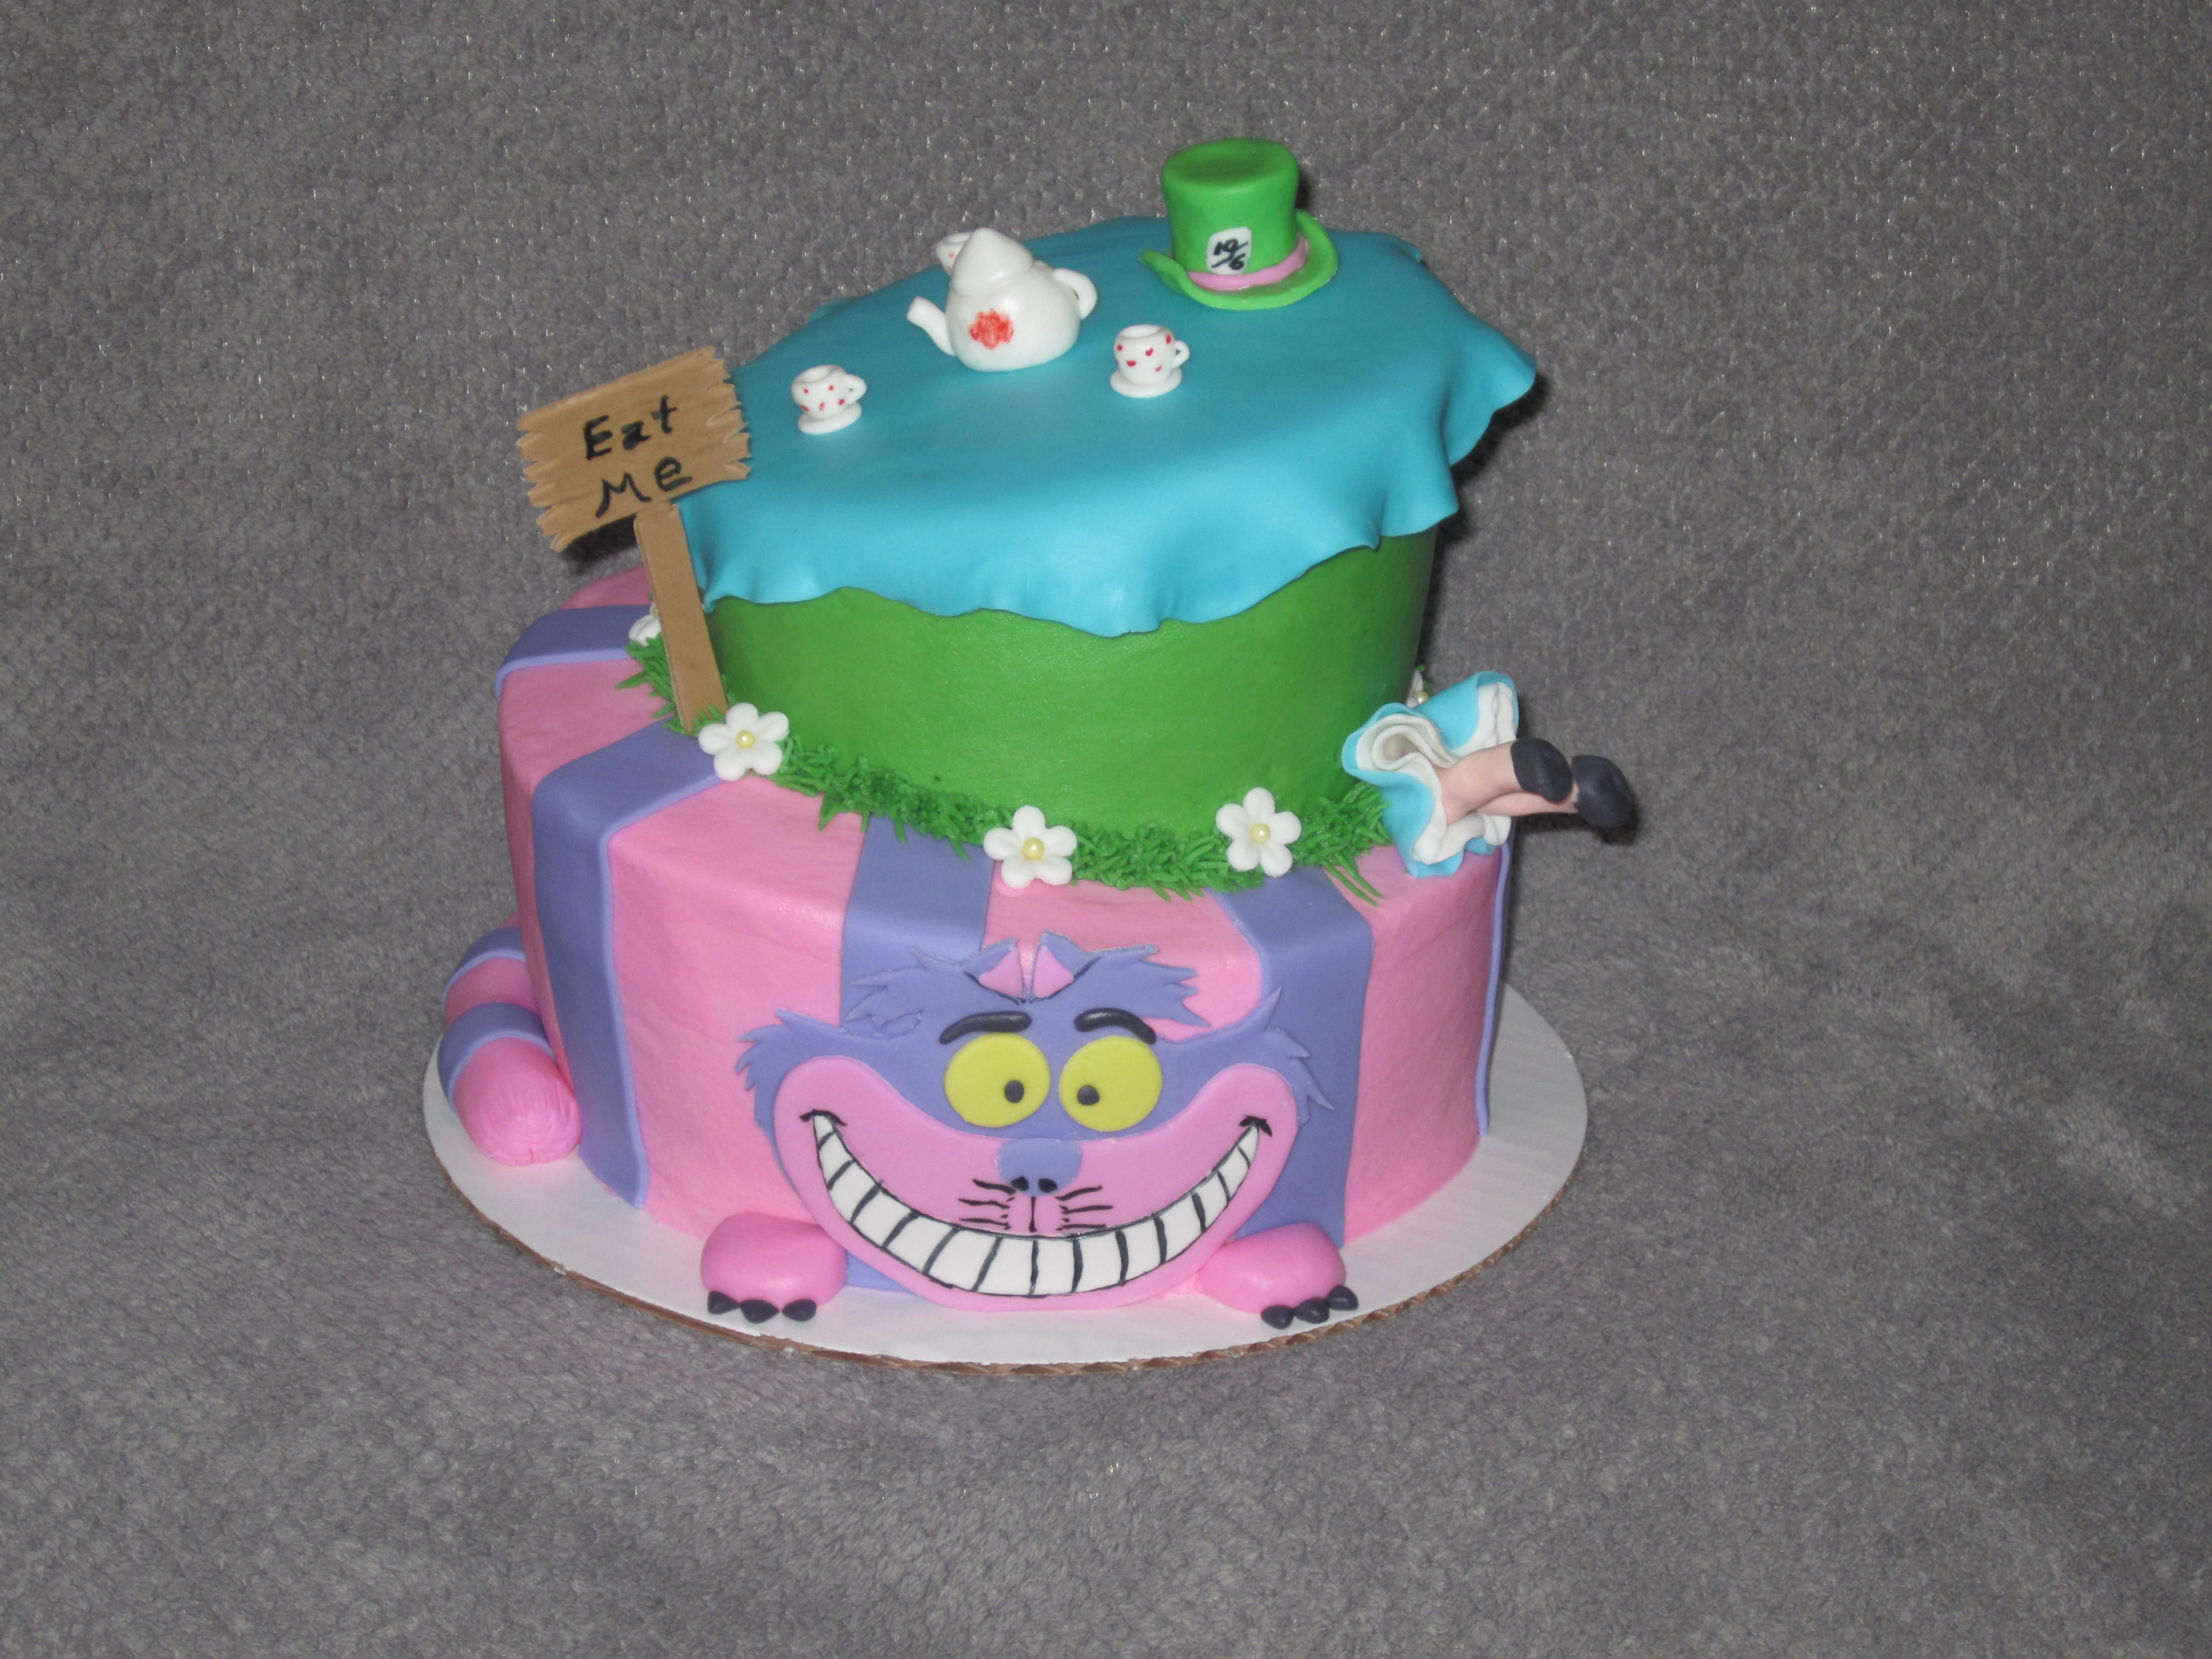 Alice in Wonderland/Mad Hatter Tea Party themed cake